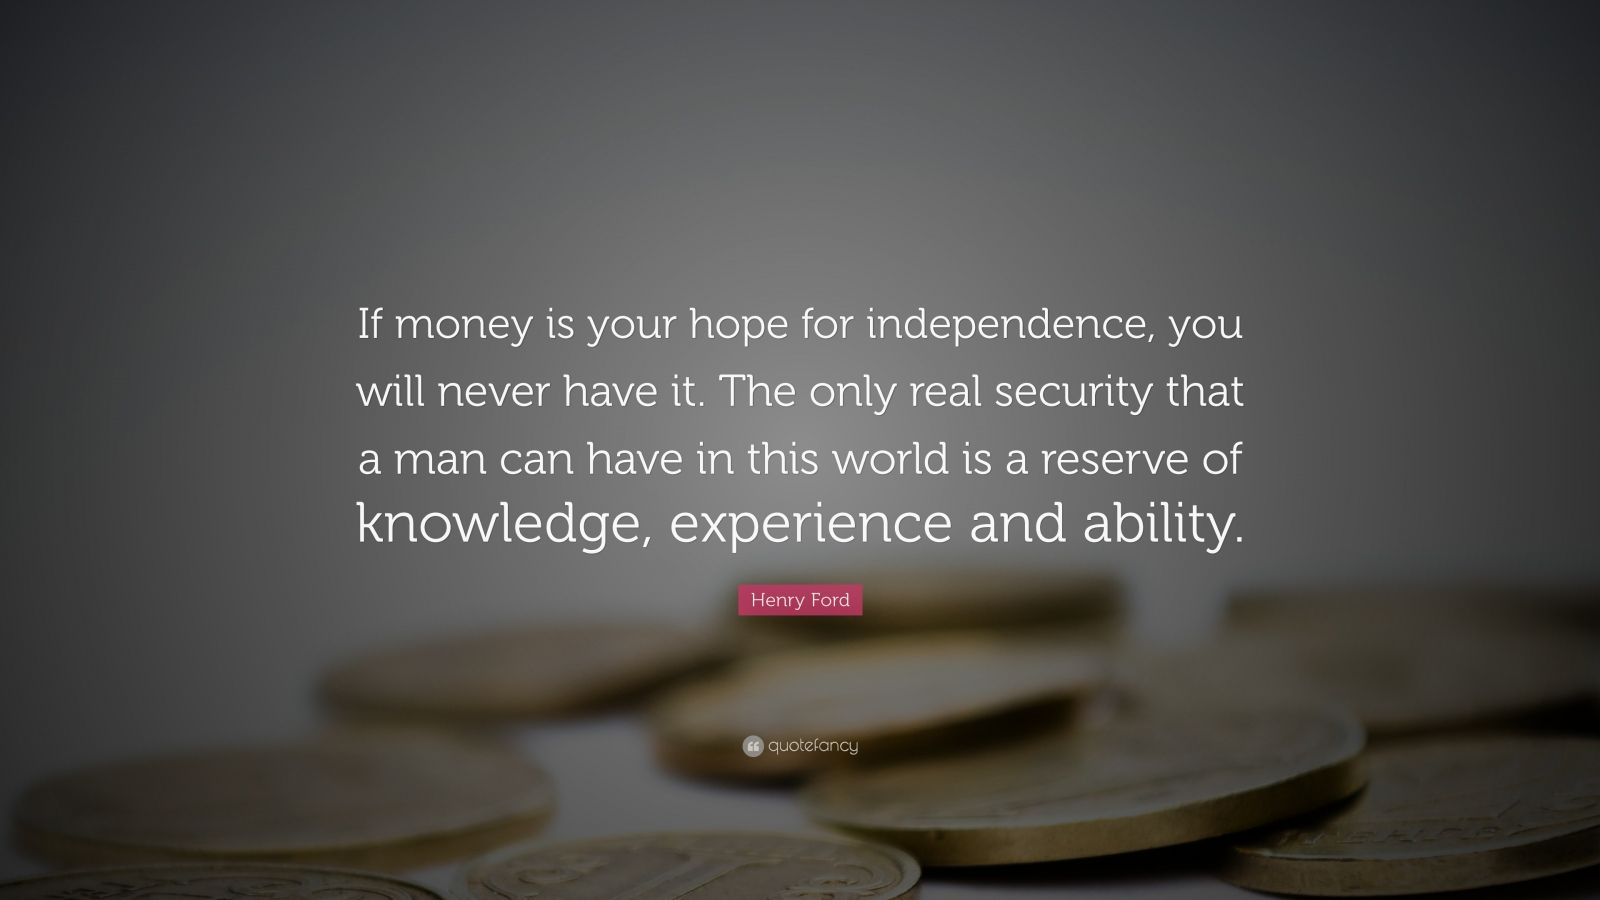 "Henry Ford Quote: ""If money is your hope for independence, you will never have it. The only real security that a man can have in this world is a reserve of knowledge, experience and ability."""